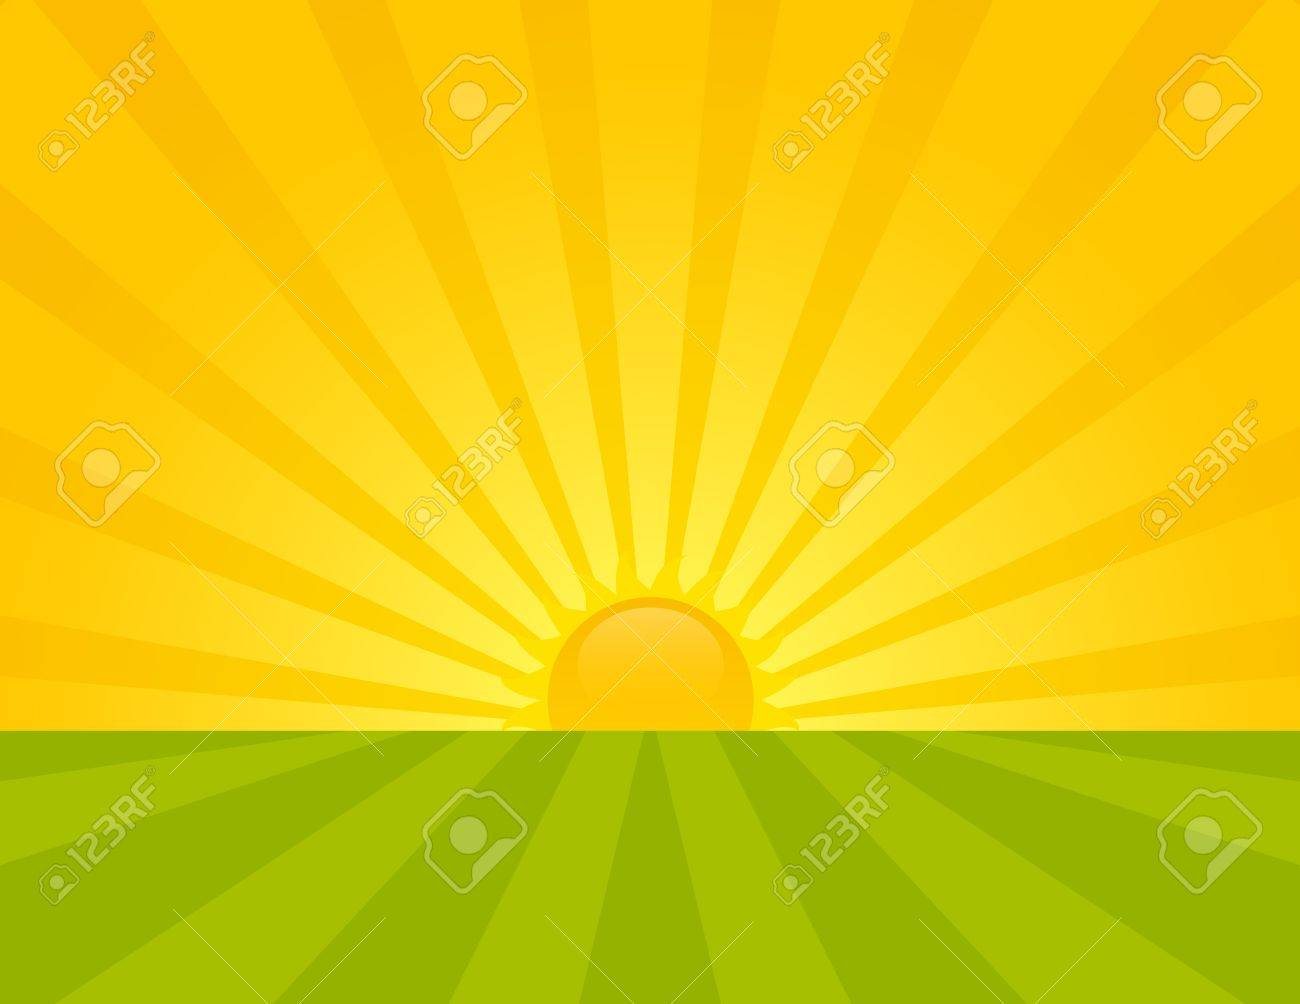 Sunrise on the countryside. Summer sunny day. Stock Vector - 10617685